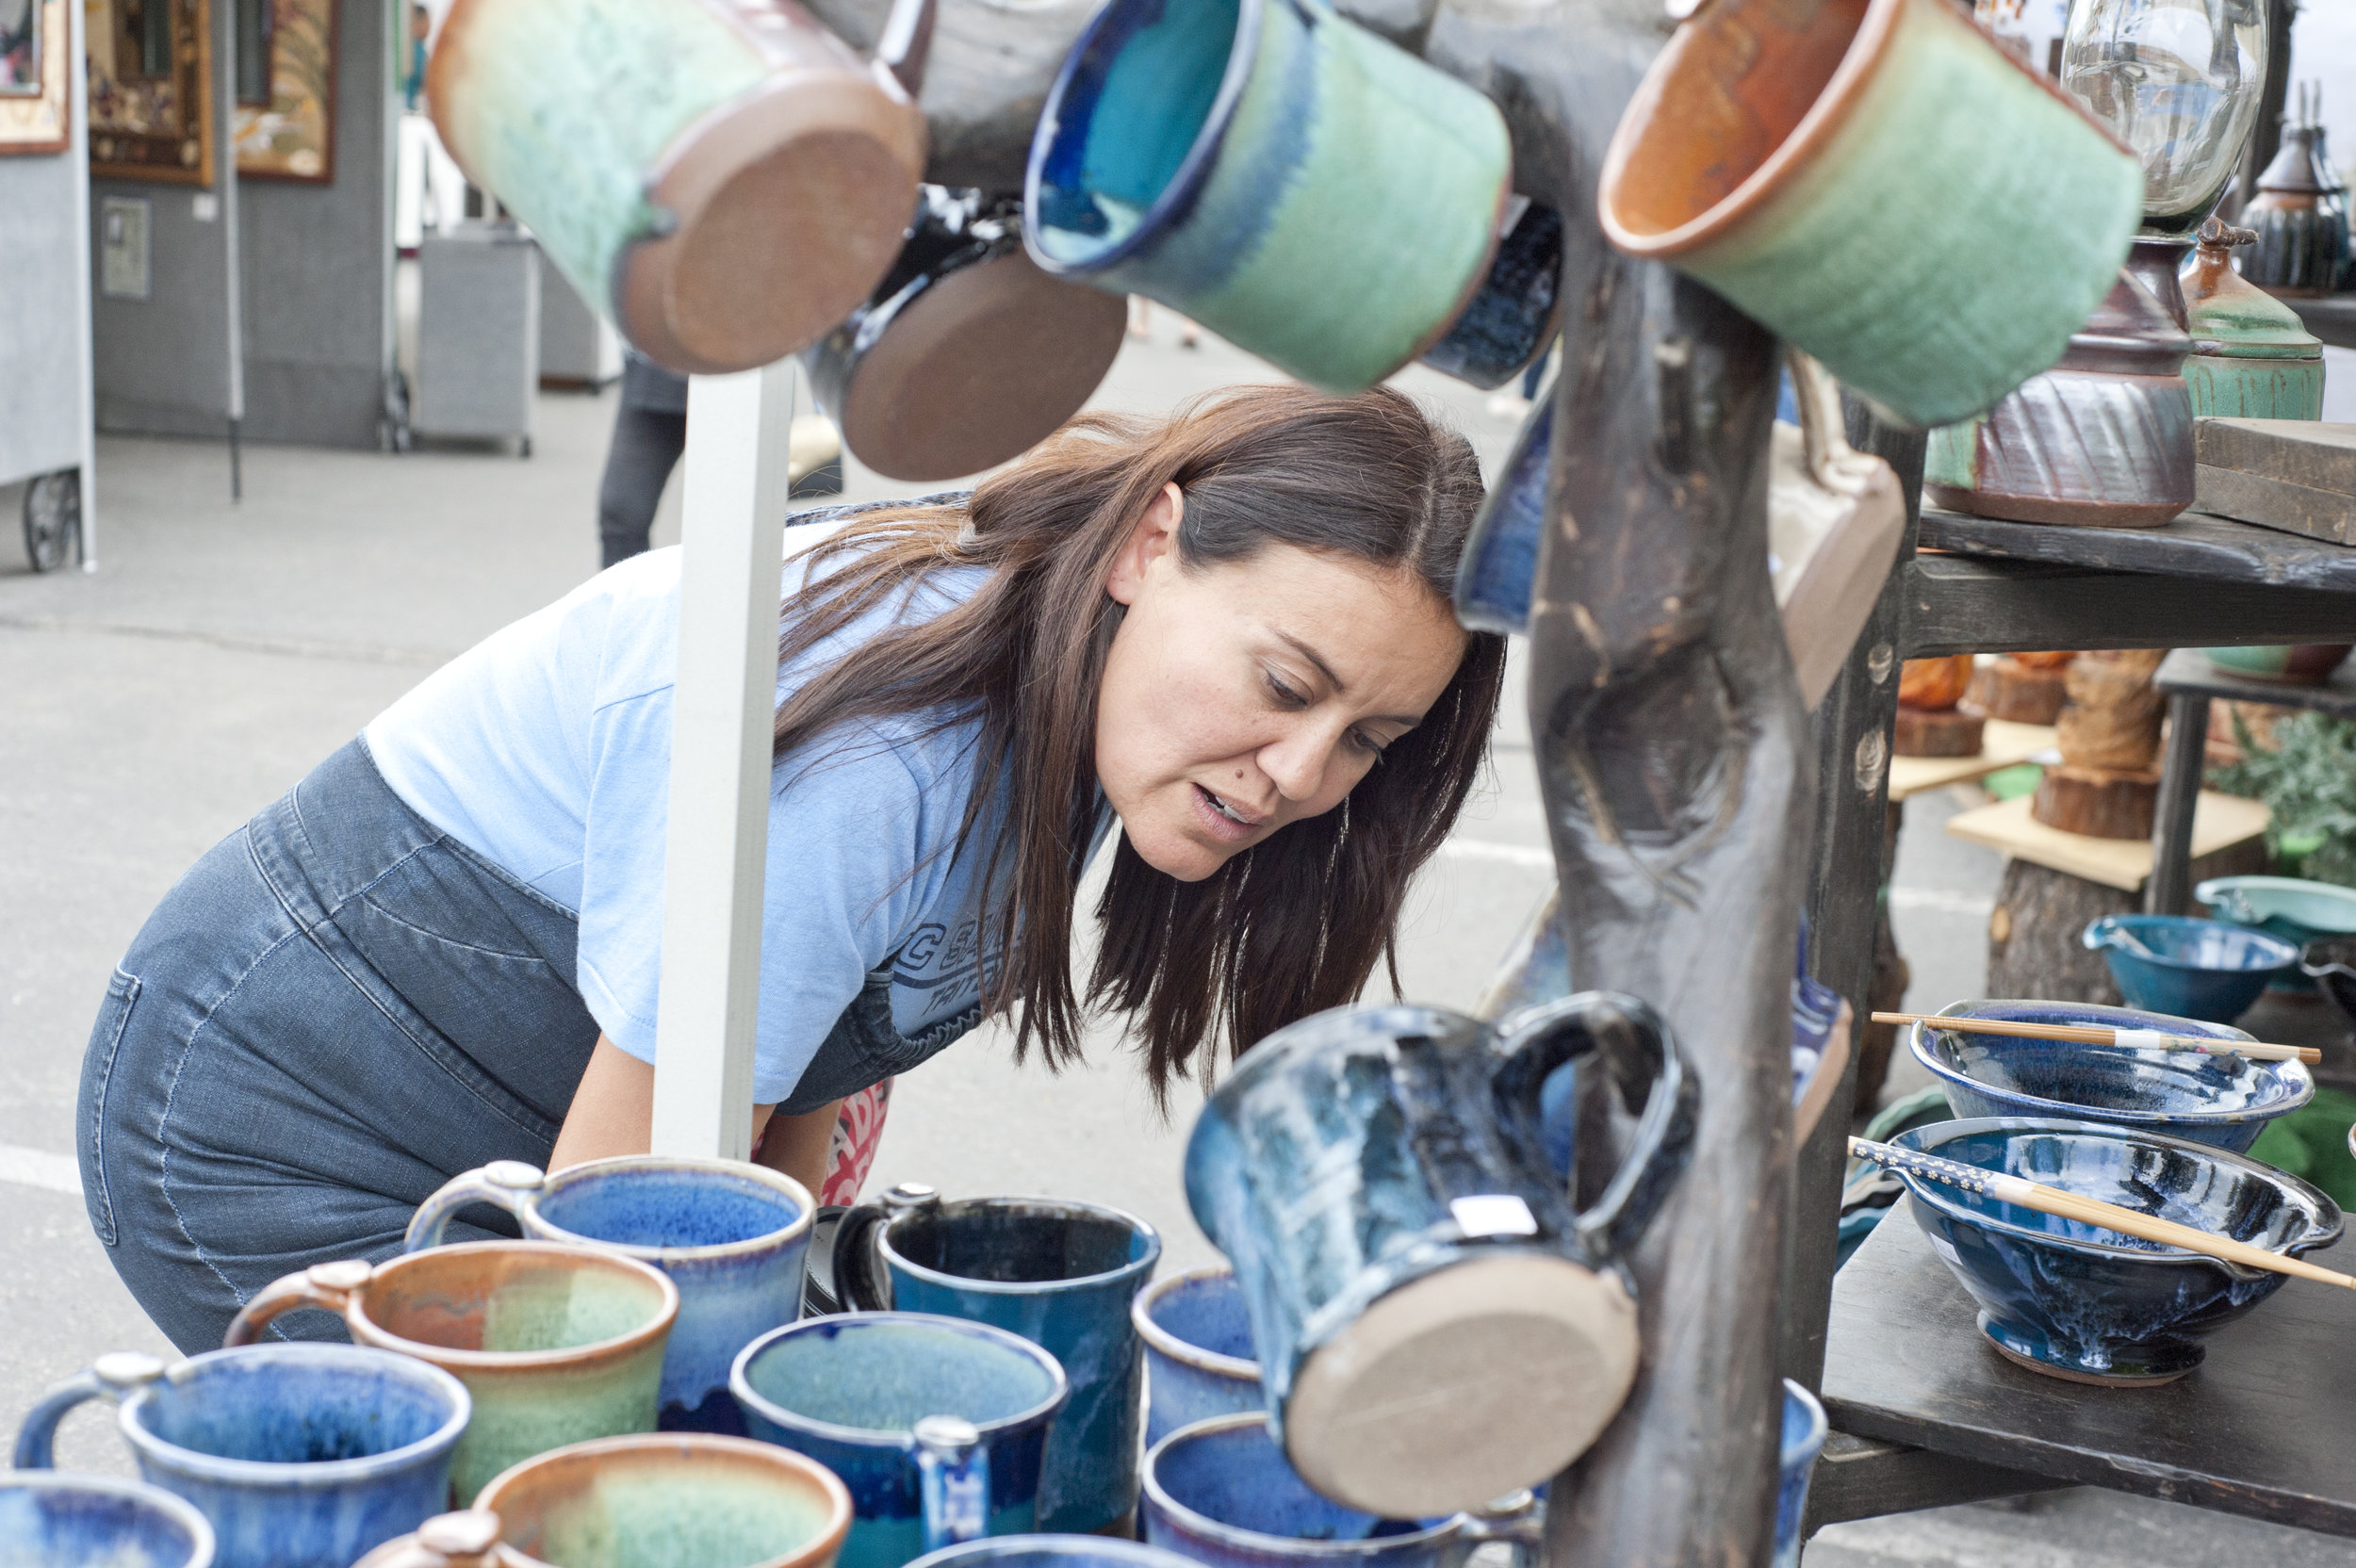 A woman checks out the many works at the Fabrile Studios Pottery stand during the Art on the Lake art show in Big Bear Lake Aug. 20, 2016.